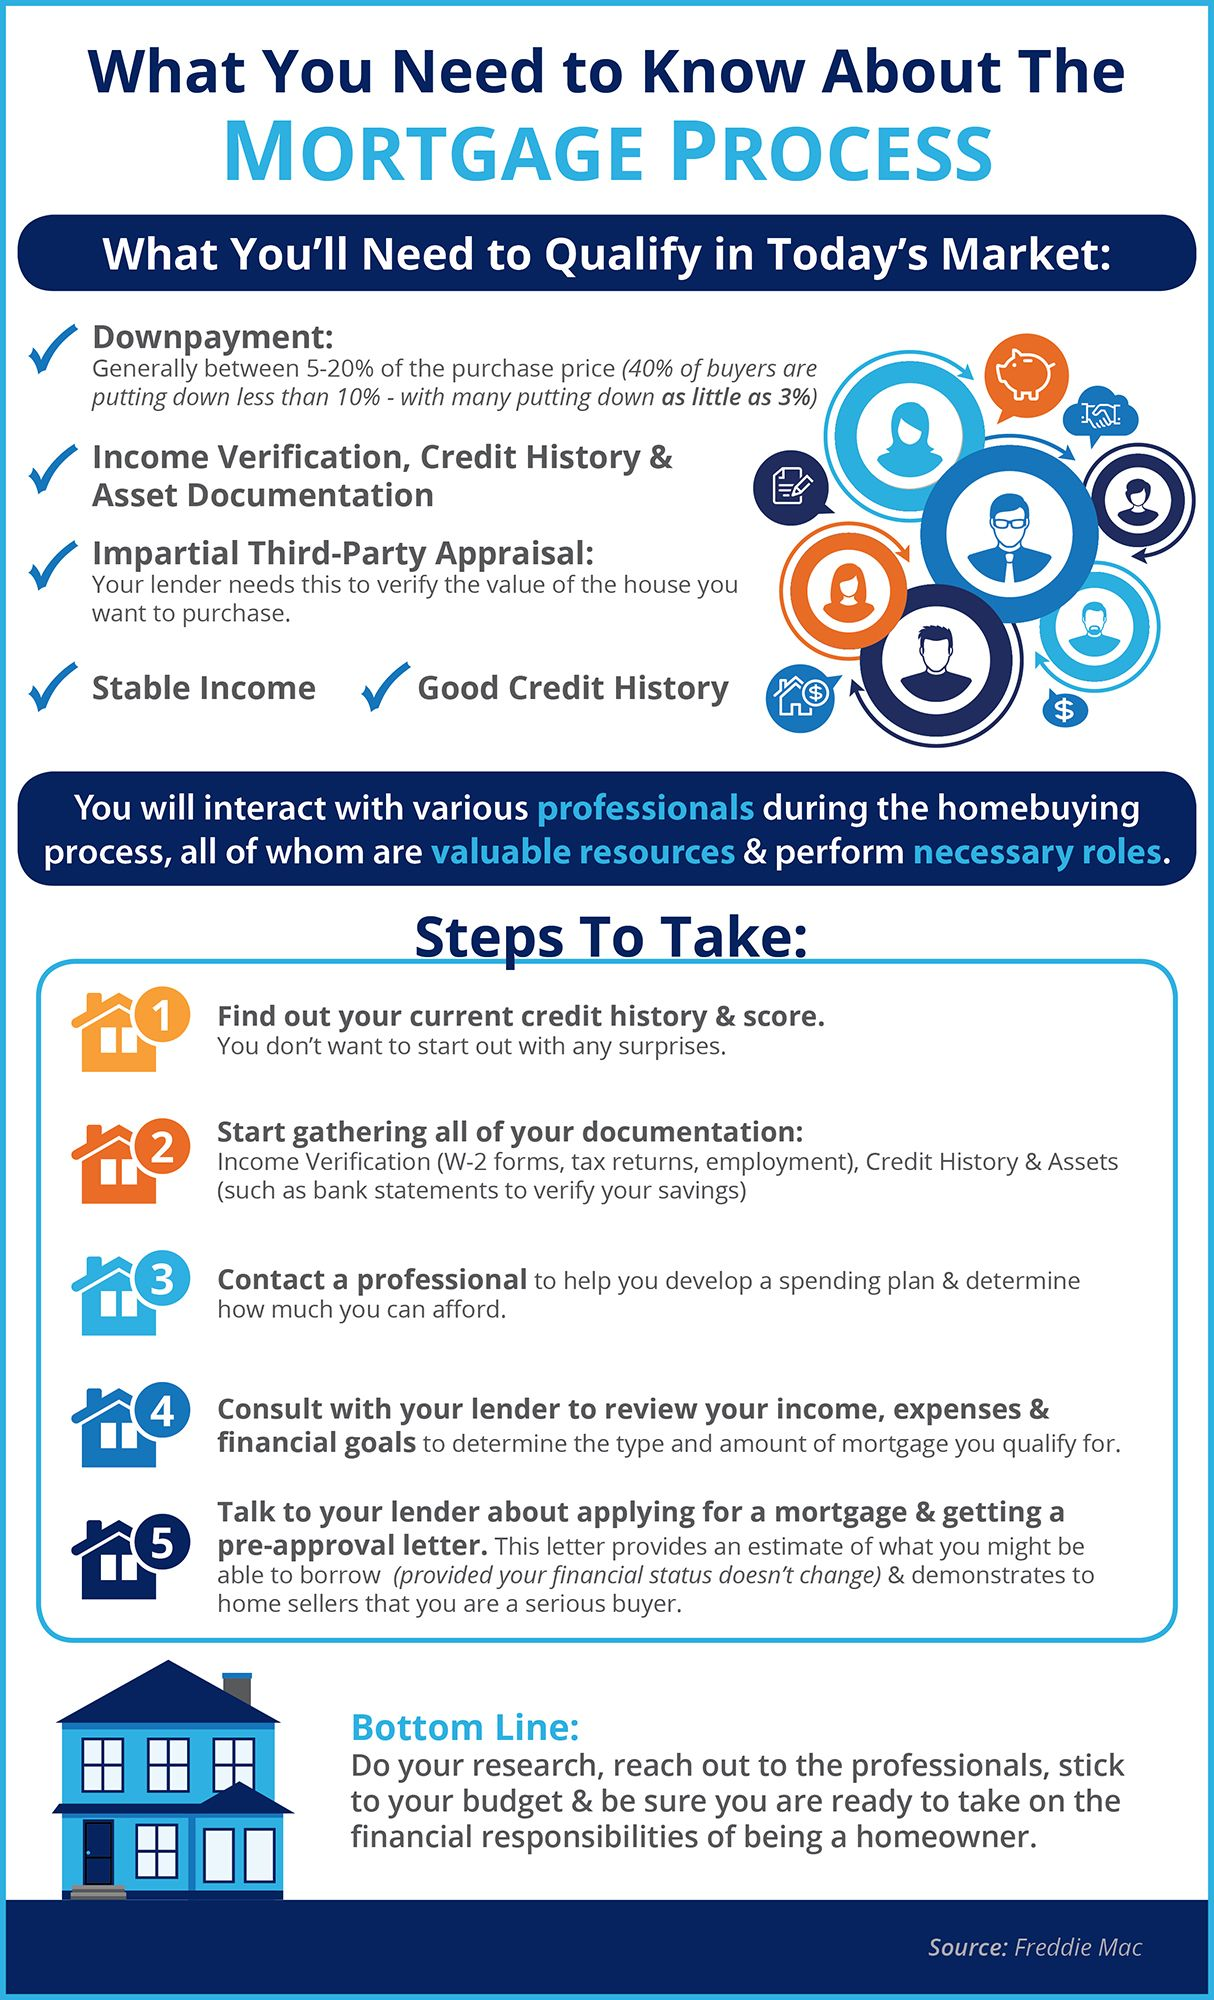 What You Need To Know About The Mortgage Process Infographic